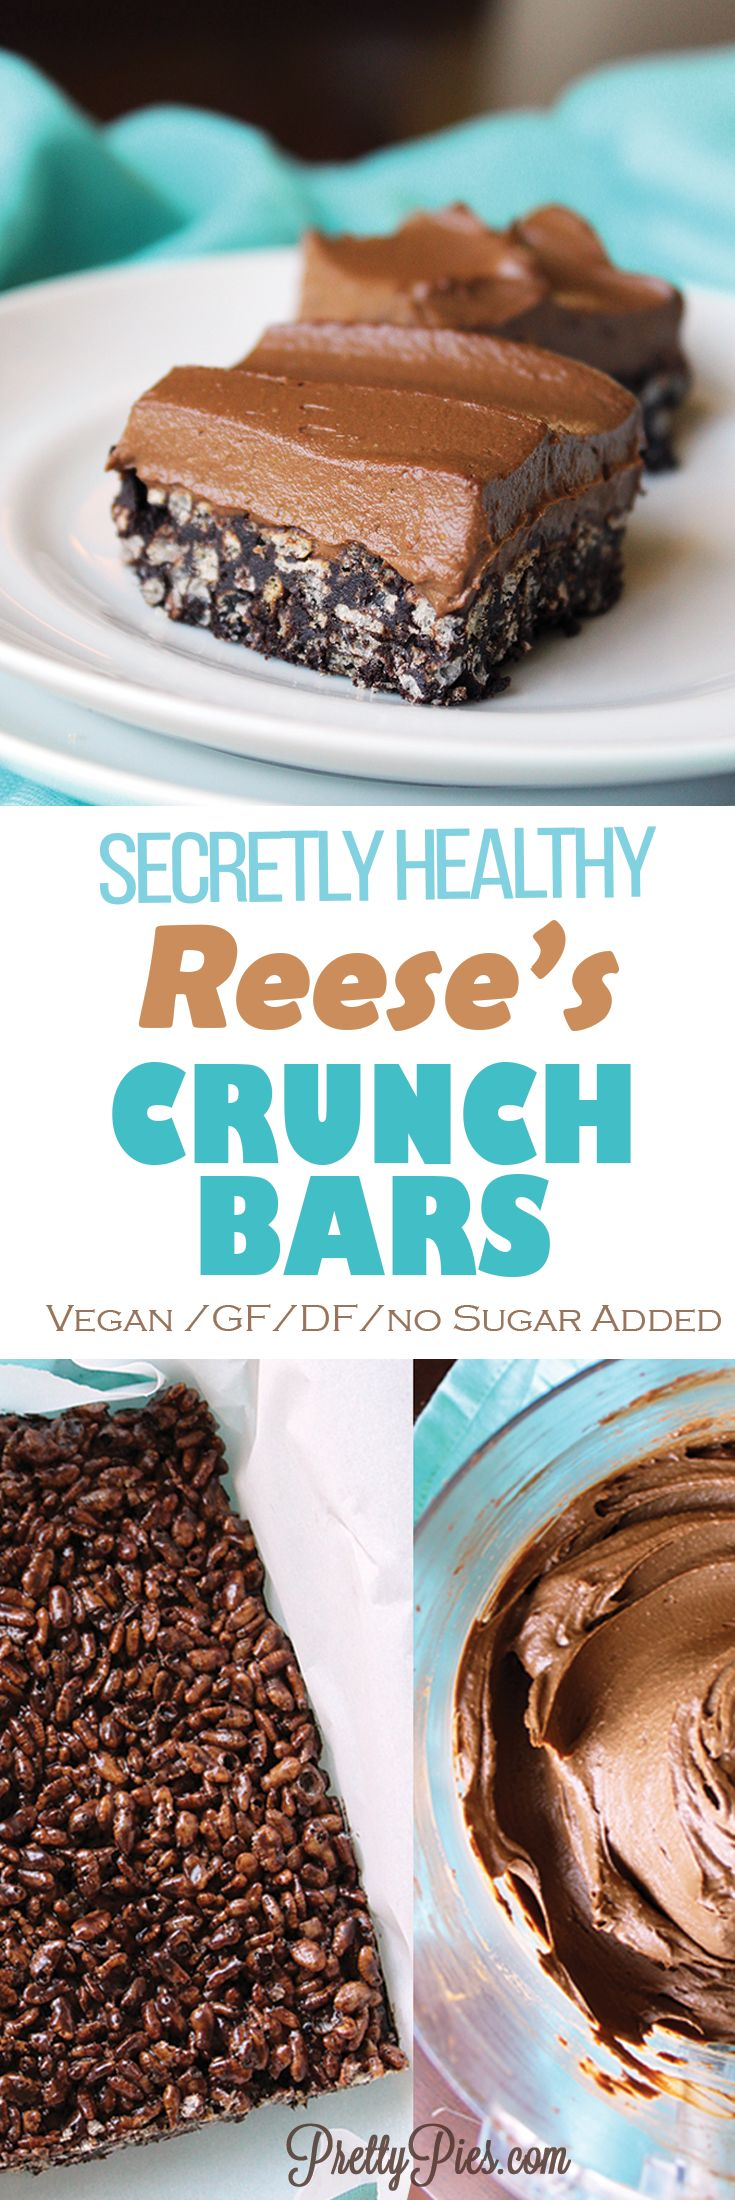 """So much delicious peanut butter chocolate flavor in these 4 ingredient crunch bars with thick (secretly healthy) """"Reese's"""" frosting! Real food with ZERO added sugar. #cleaneating #vegan #glutenfree"""